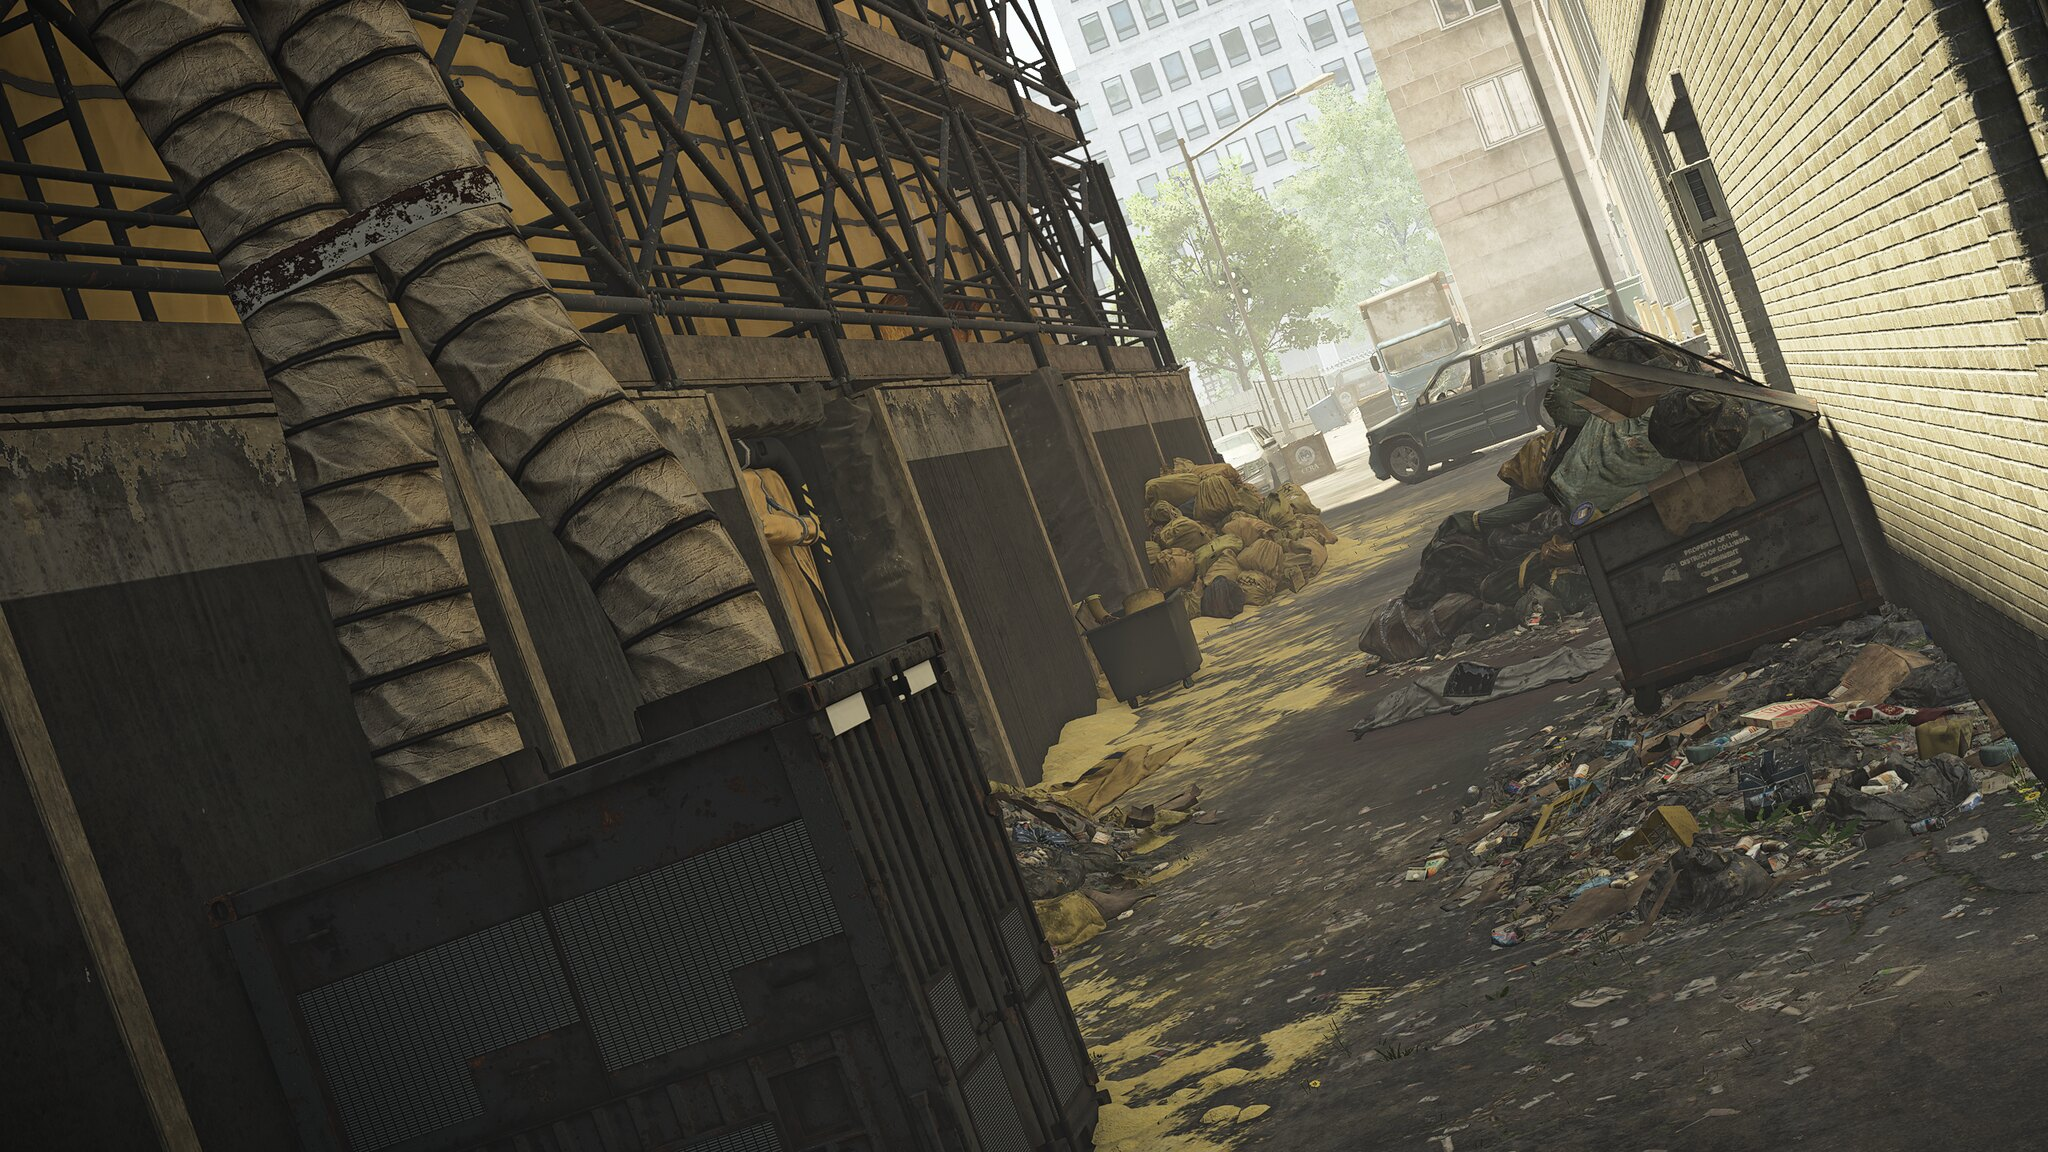 47025074142_4684a6910f_k.jpg - Tom Clancy's The Division 2